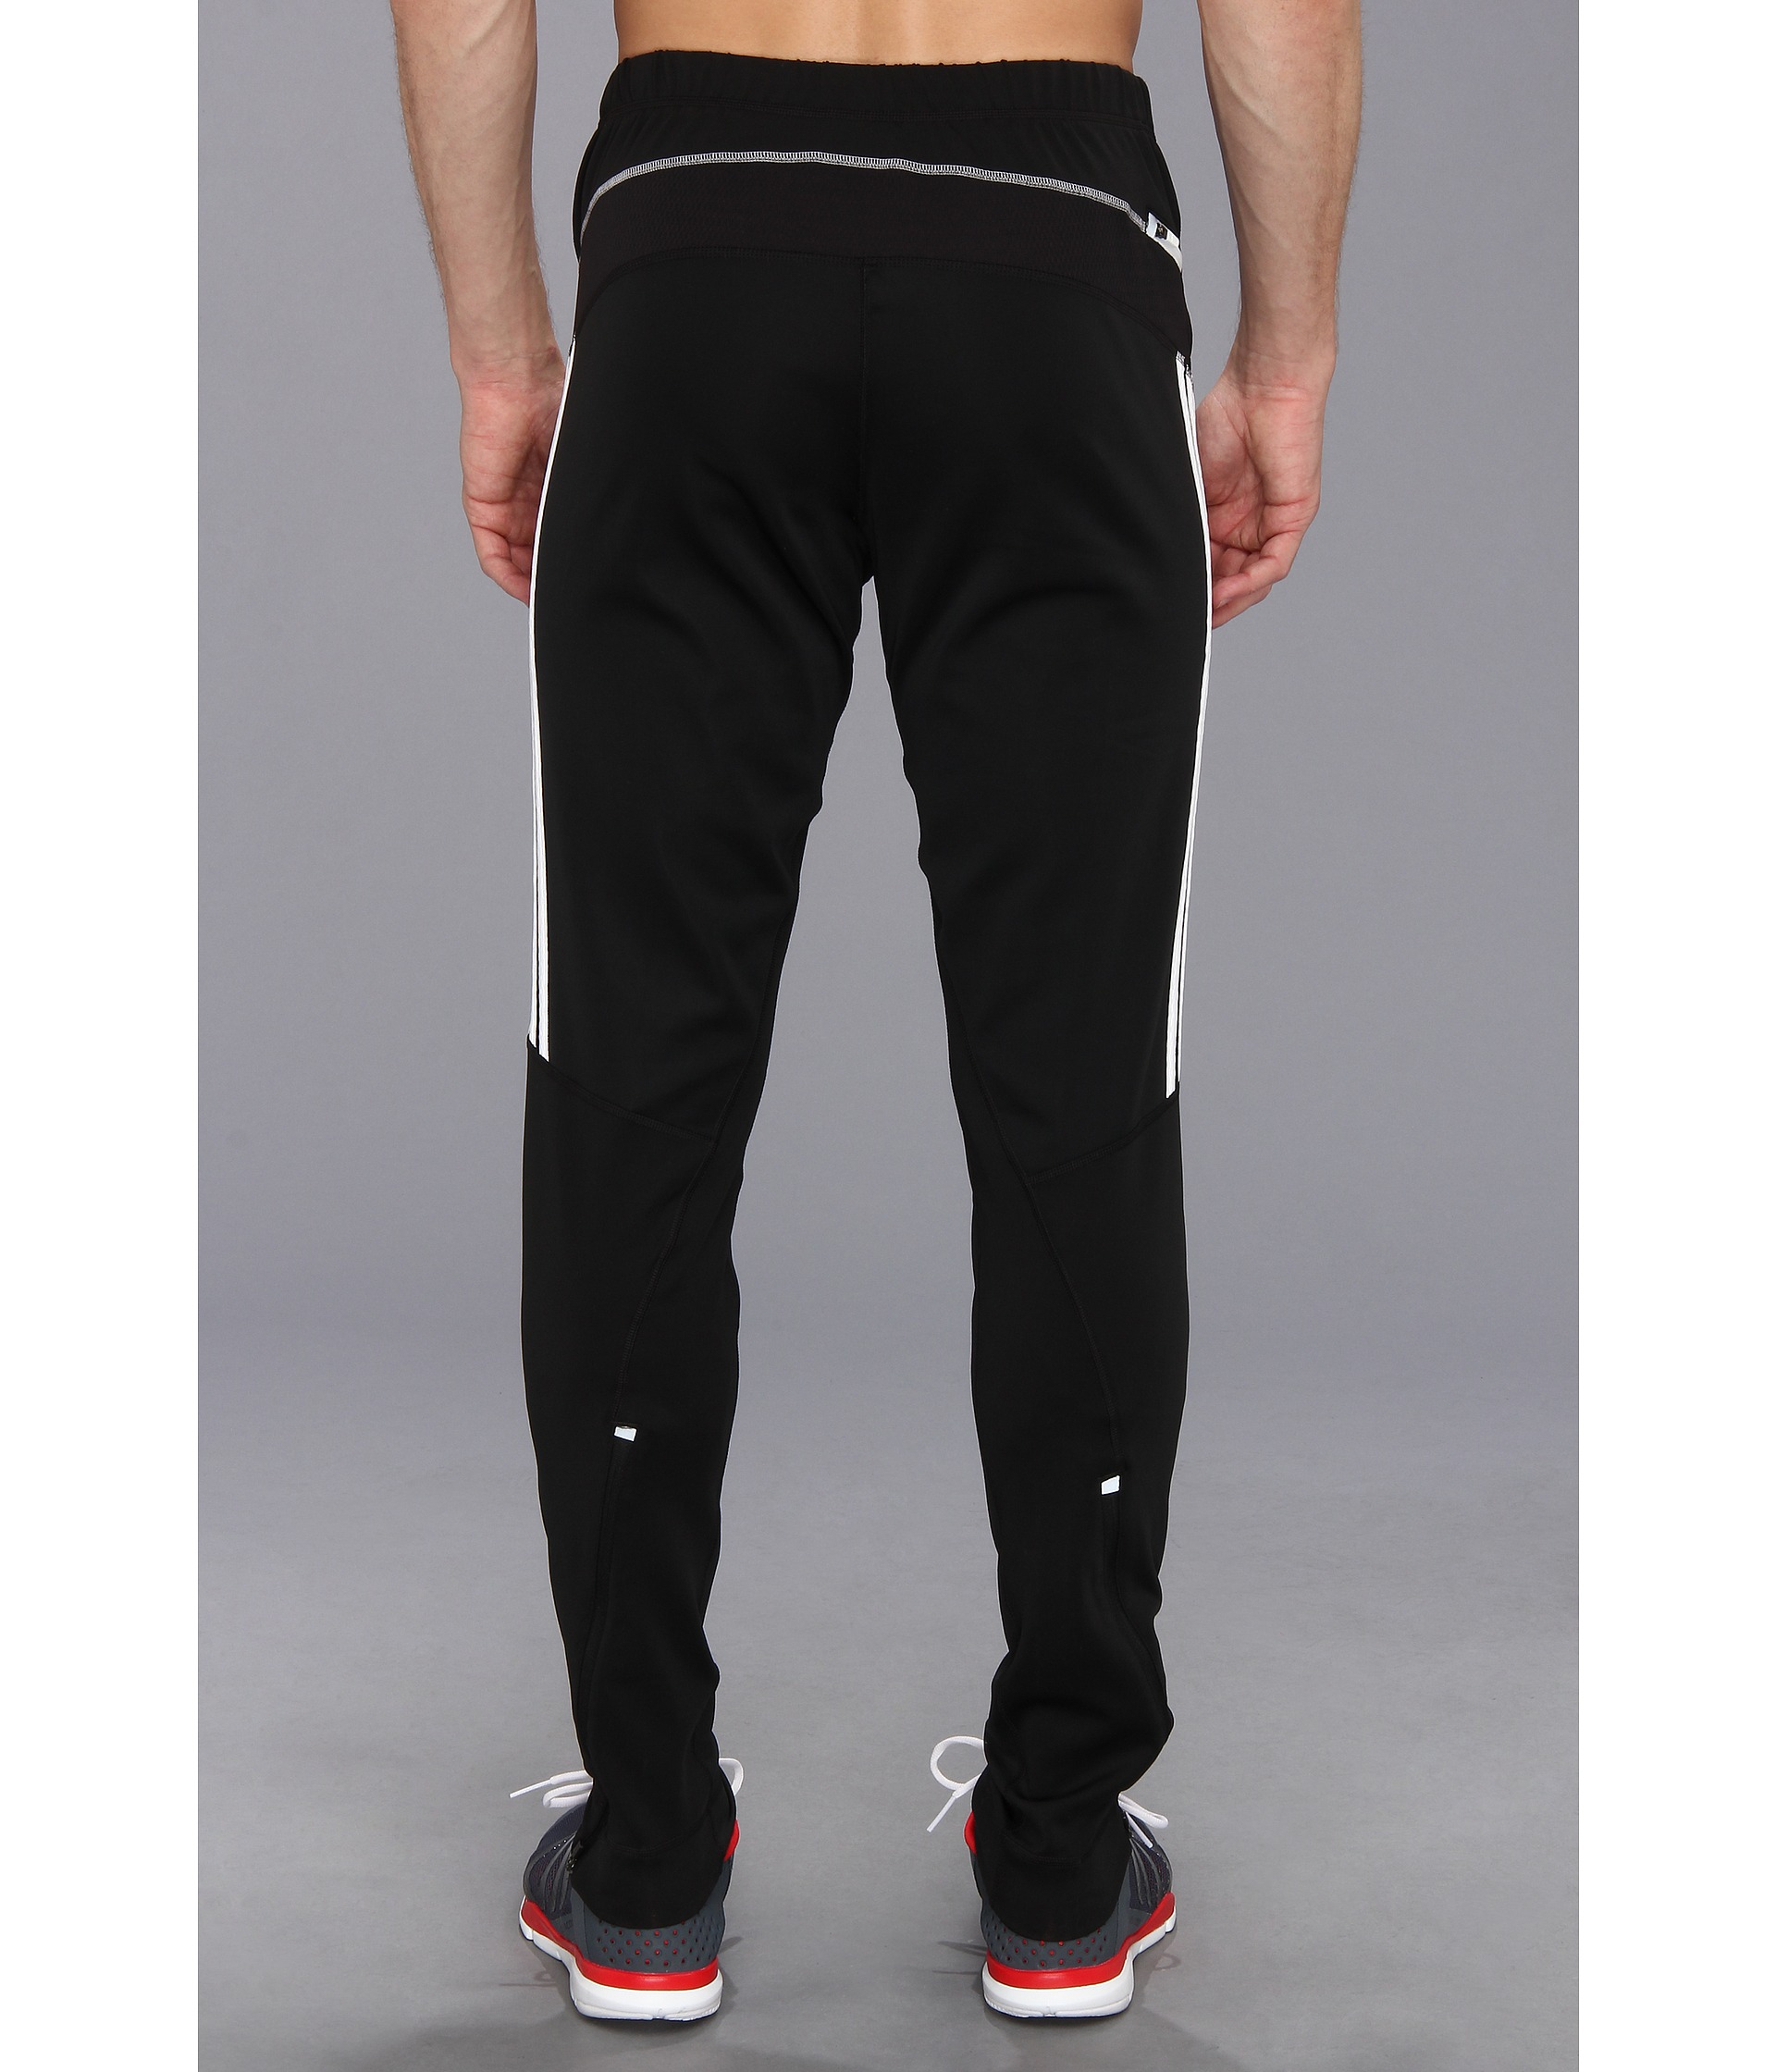 24216d846dc0 Lyst - adidas Response Astro Pant in Black for Men